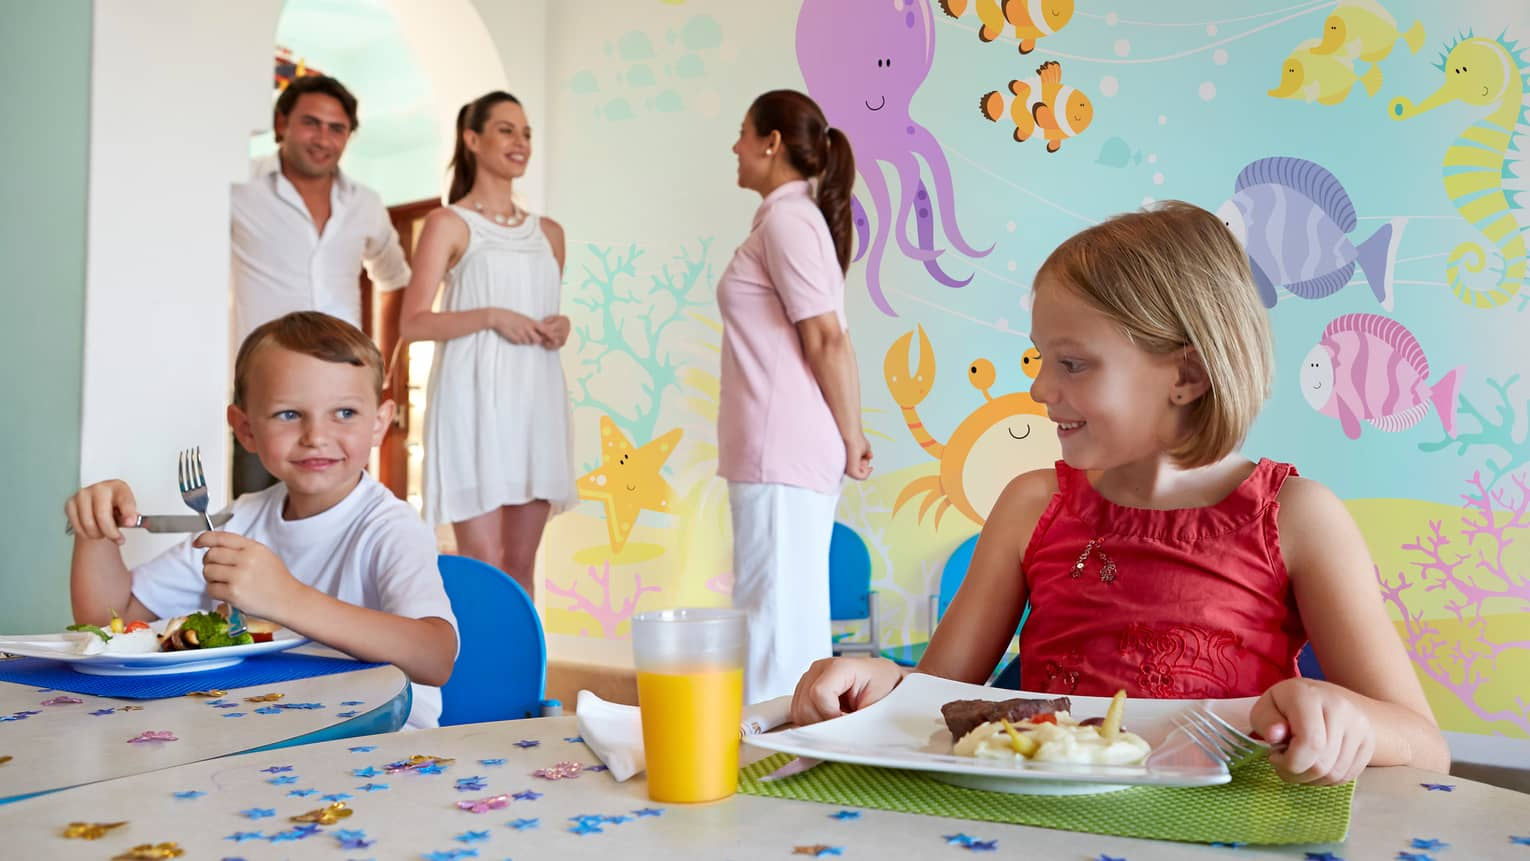 Two smiling young children at table with plates of lunch, glass of orange juice, parents and staff in front of colourful sea mural